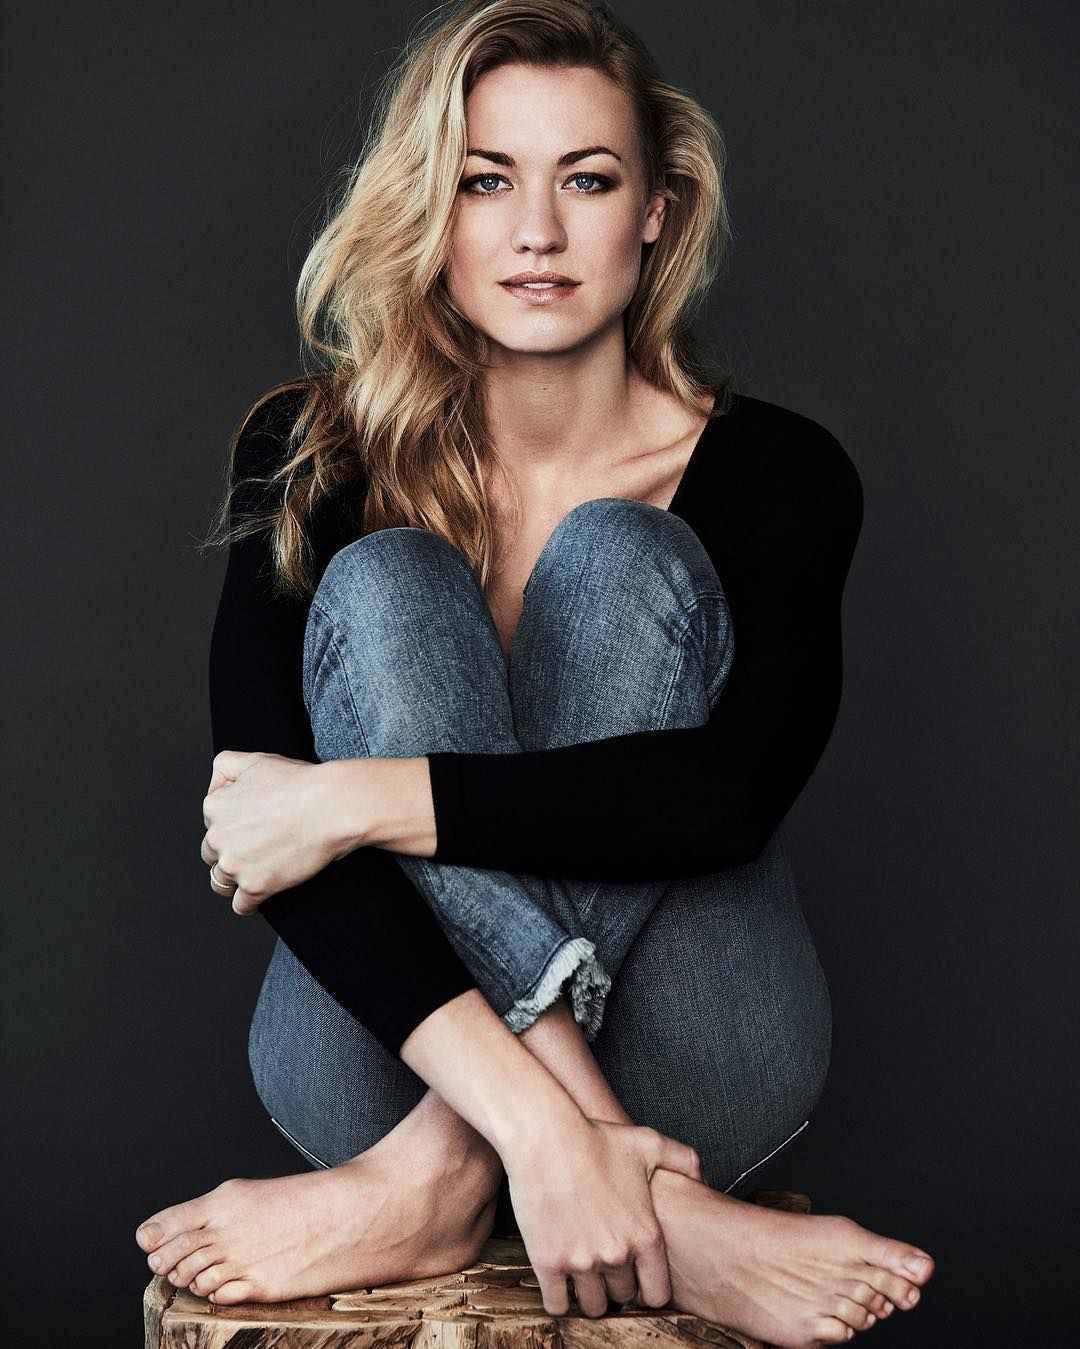 Celebrity Yvonne Strahovski nudes (19 foto and video), Topless, Leaked, Boobs, panties 2019